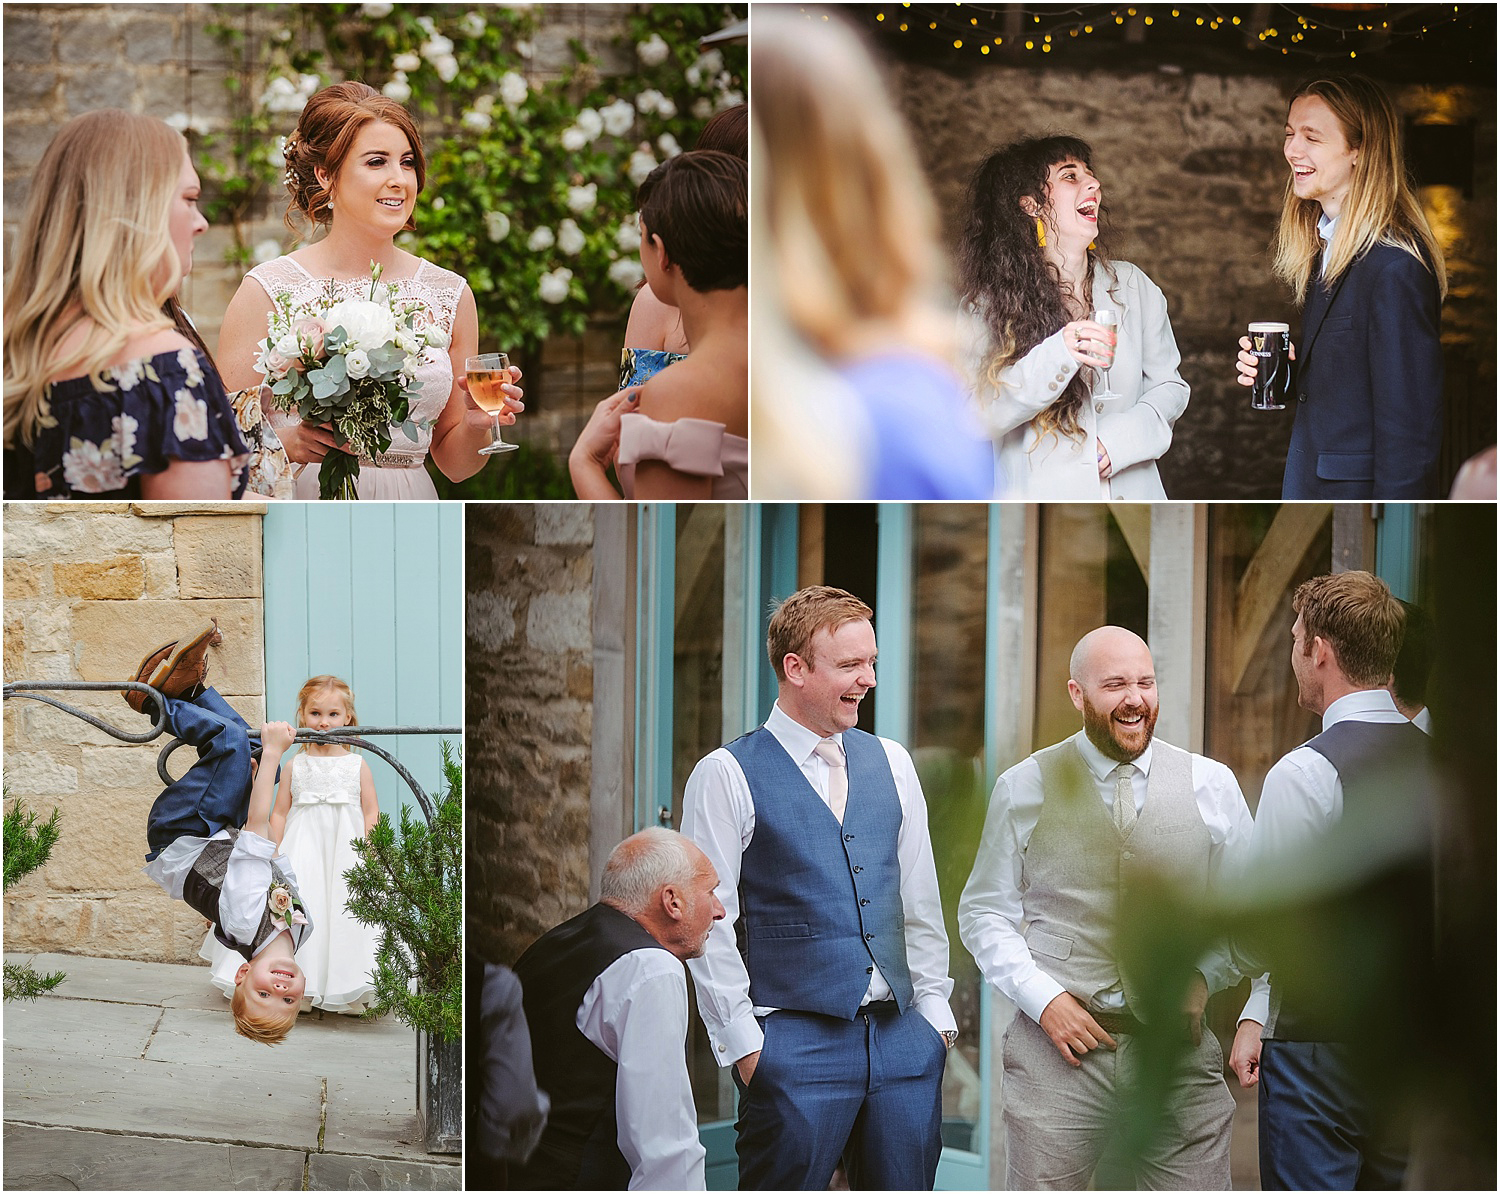 Healey Barn wedding by www.2tonephotography.co.uk 057.jpg